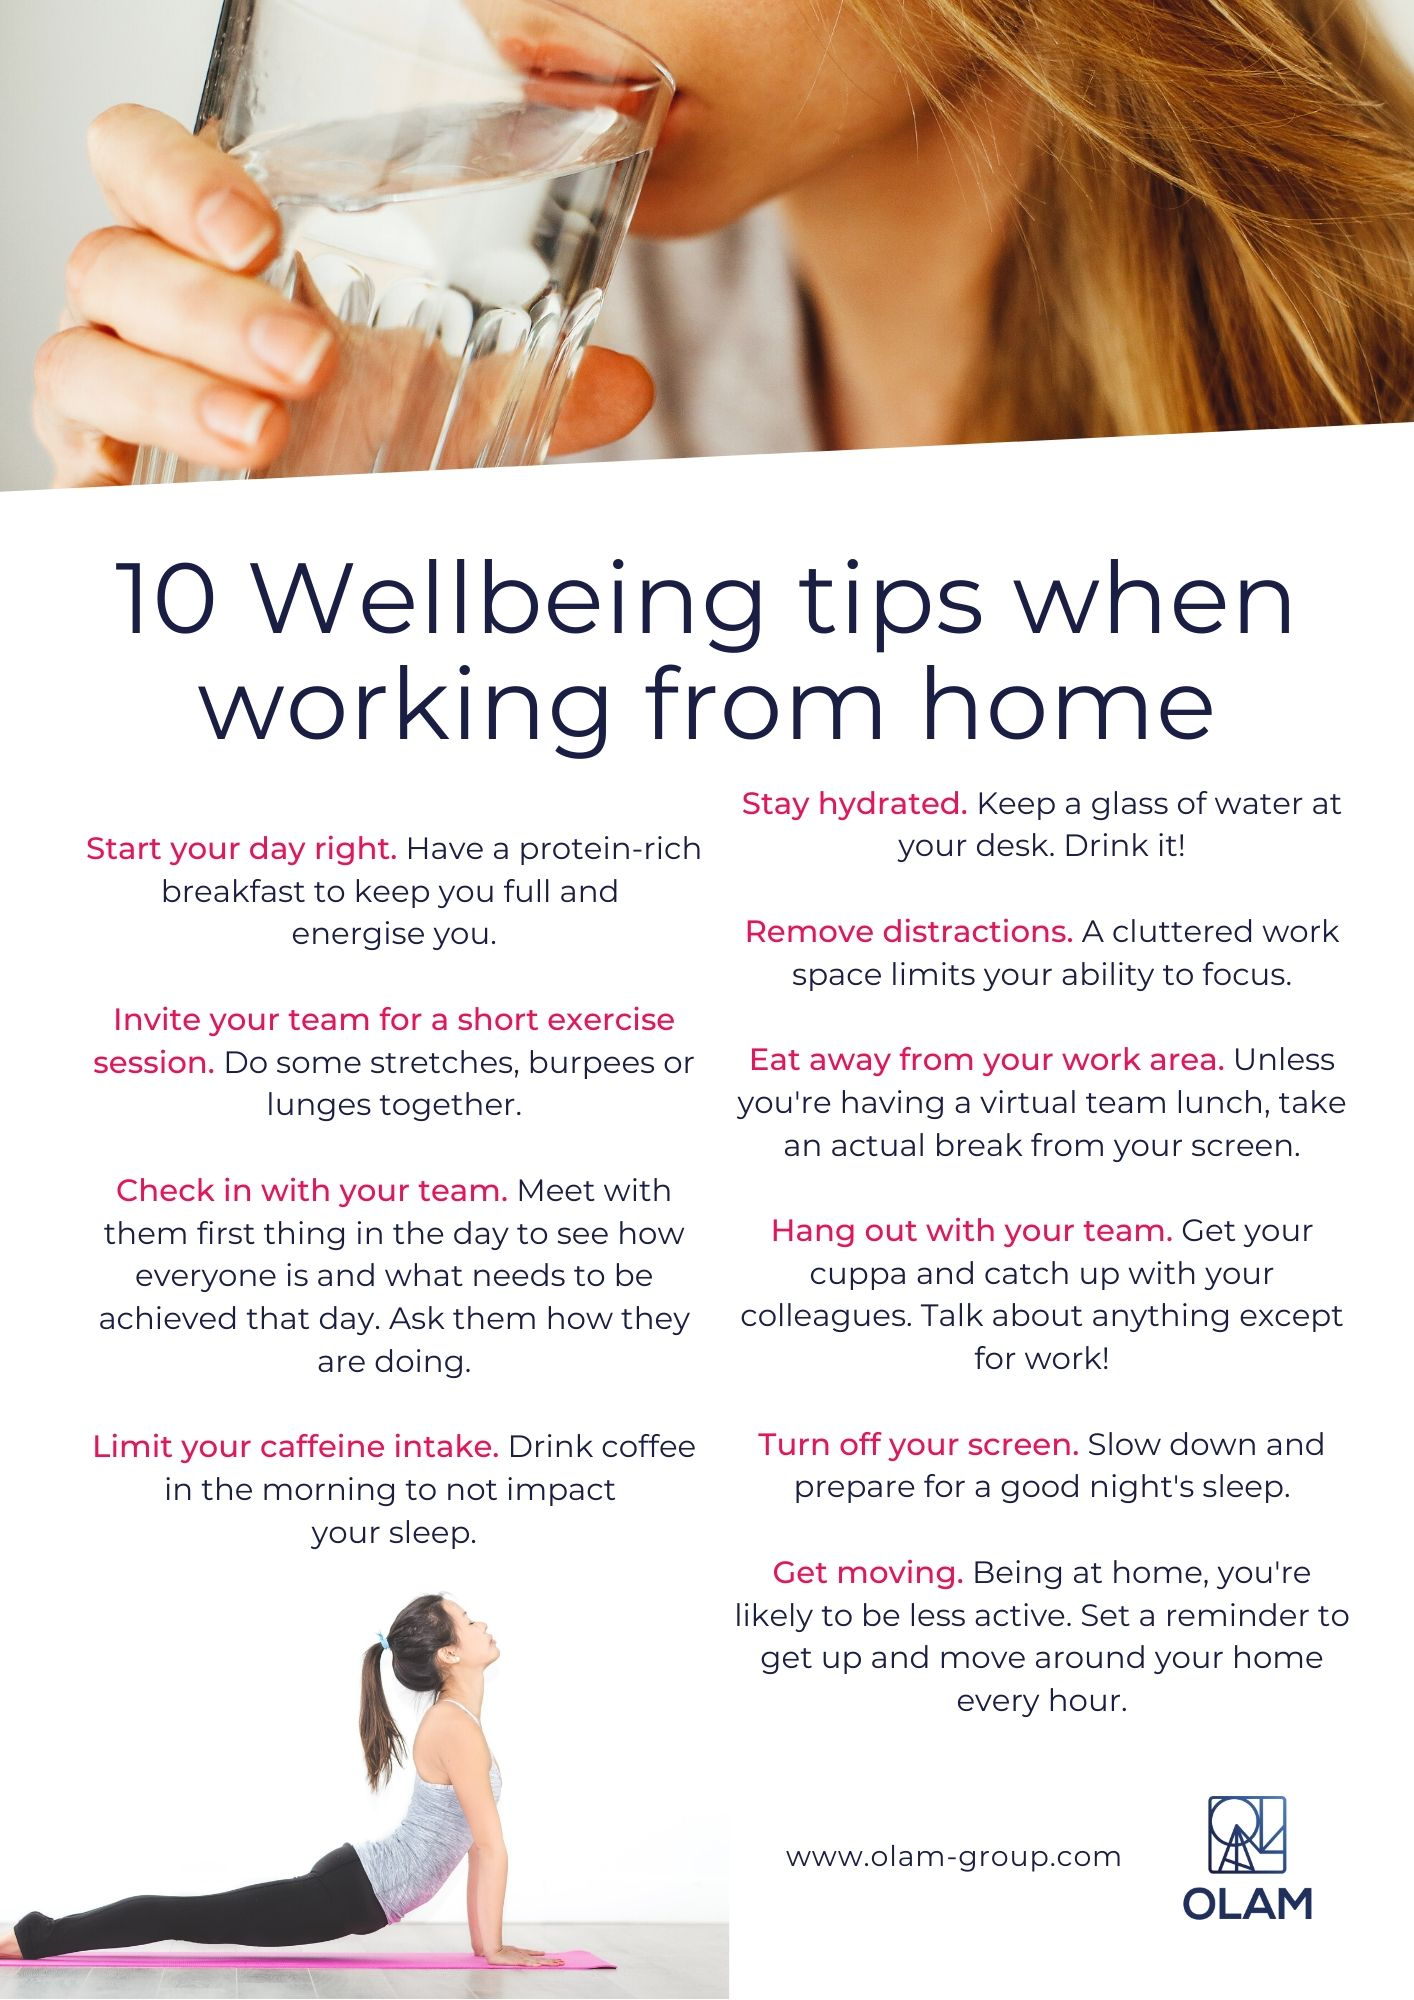 10 Wellbeing tips when working from home